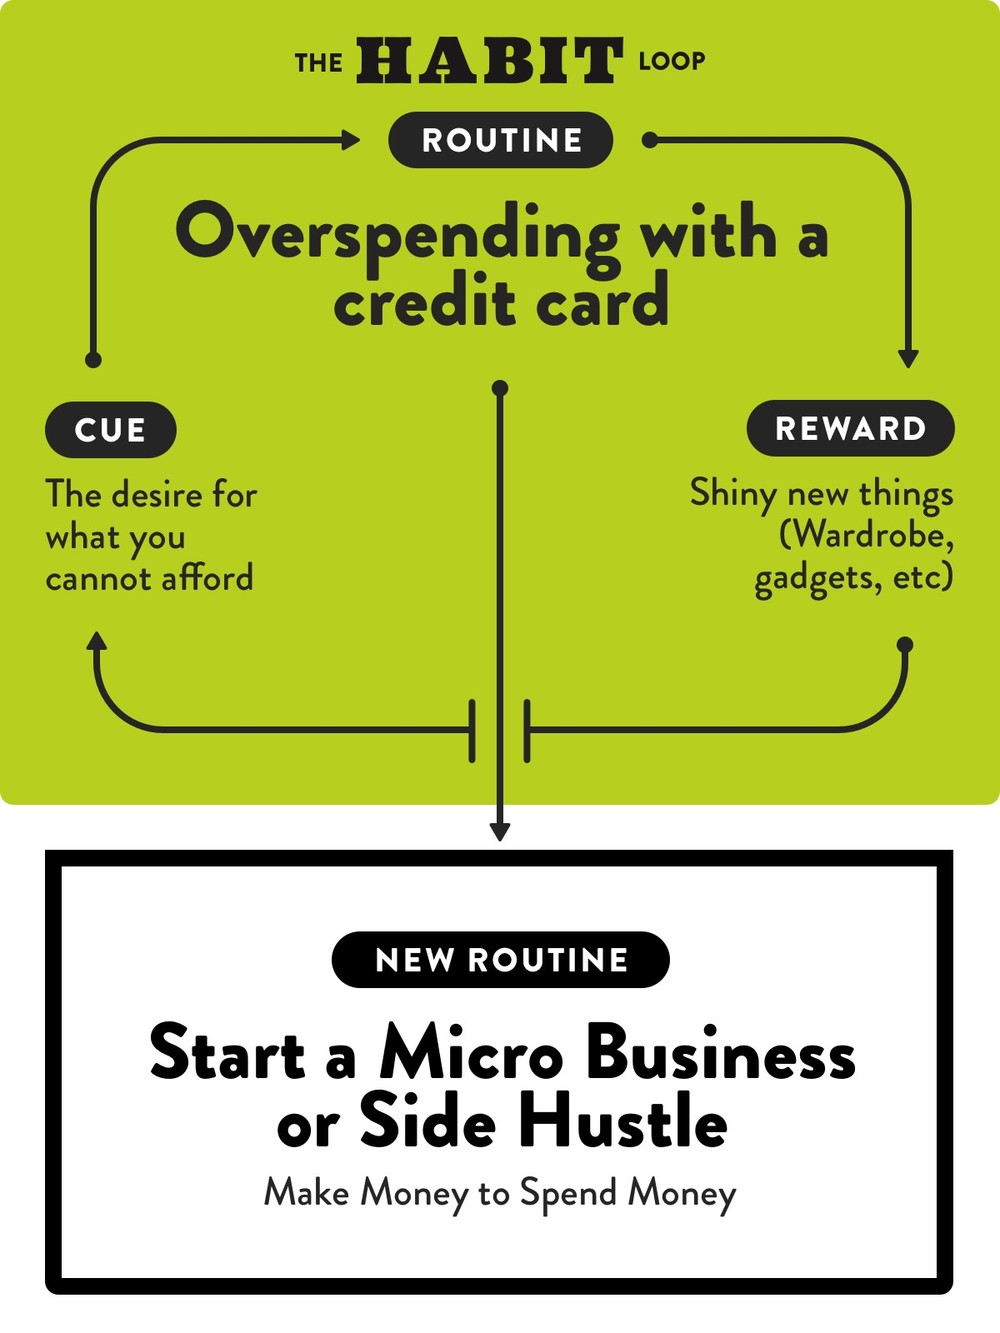 Overspending with a credit card habit loop